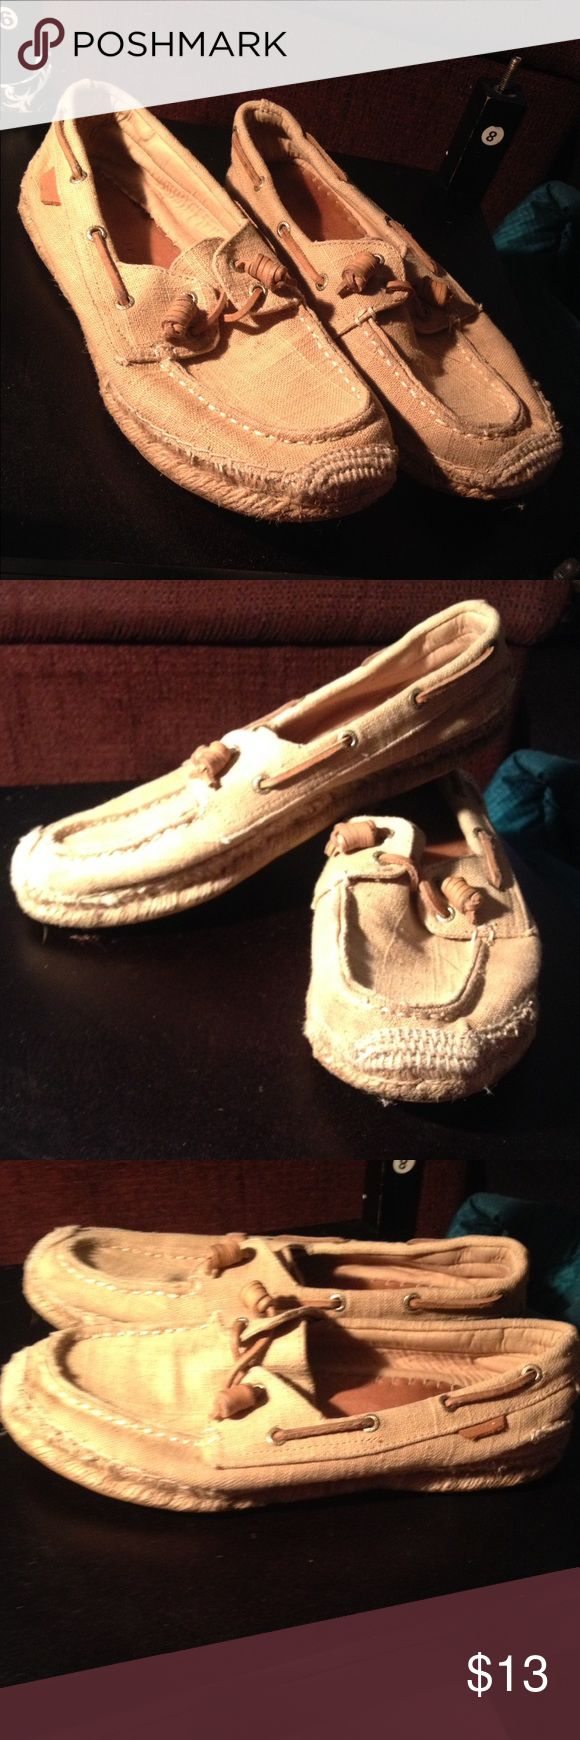 💐💐Sperry Shoes💐💐 Tan linen sperrys.  Clean, still lot of life left in the sole Sperry Shoes Espadrilles